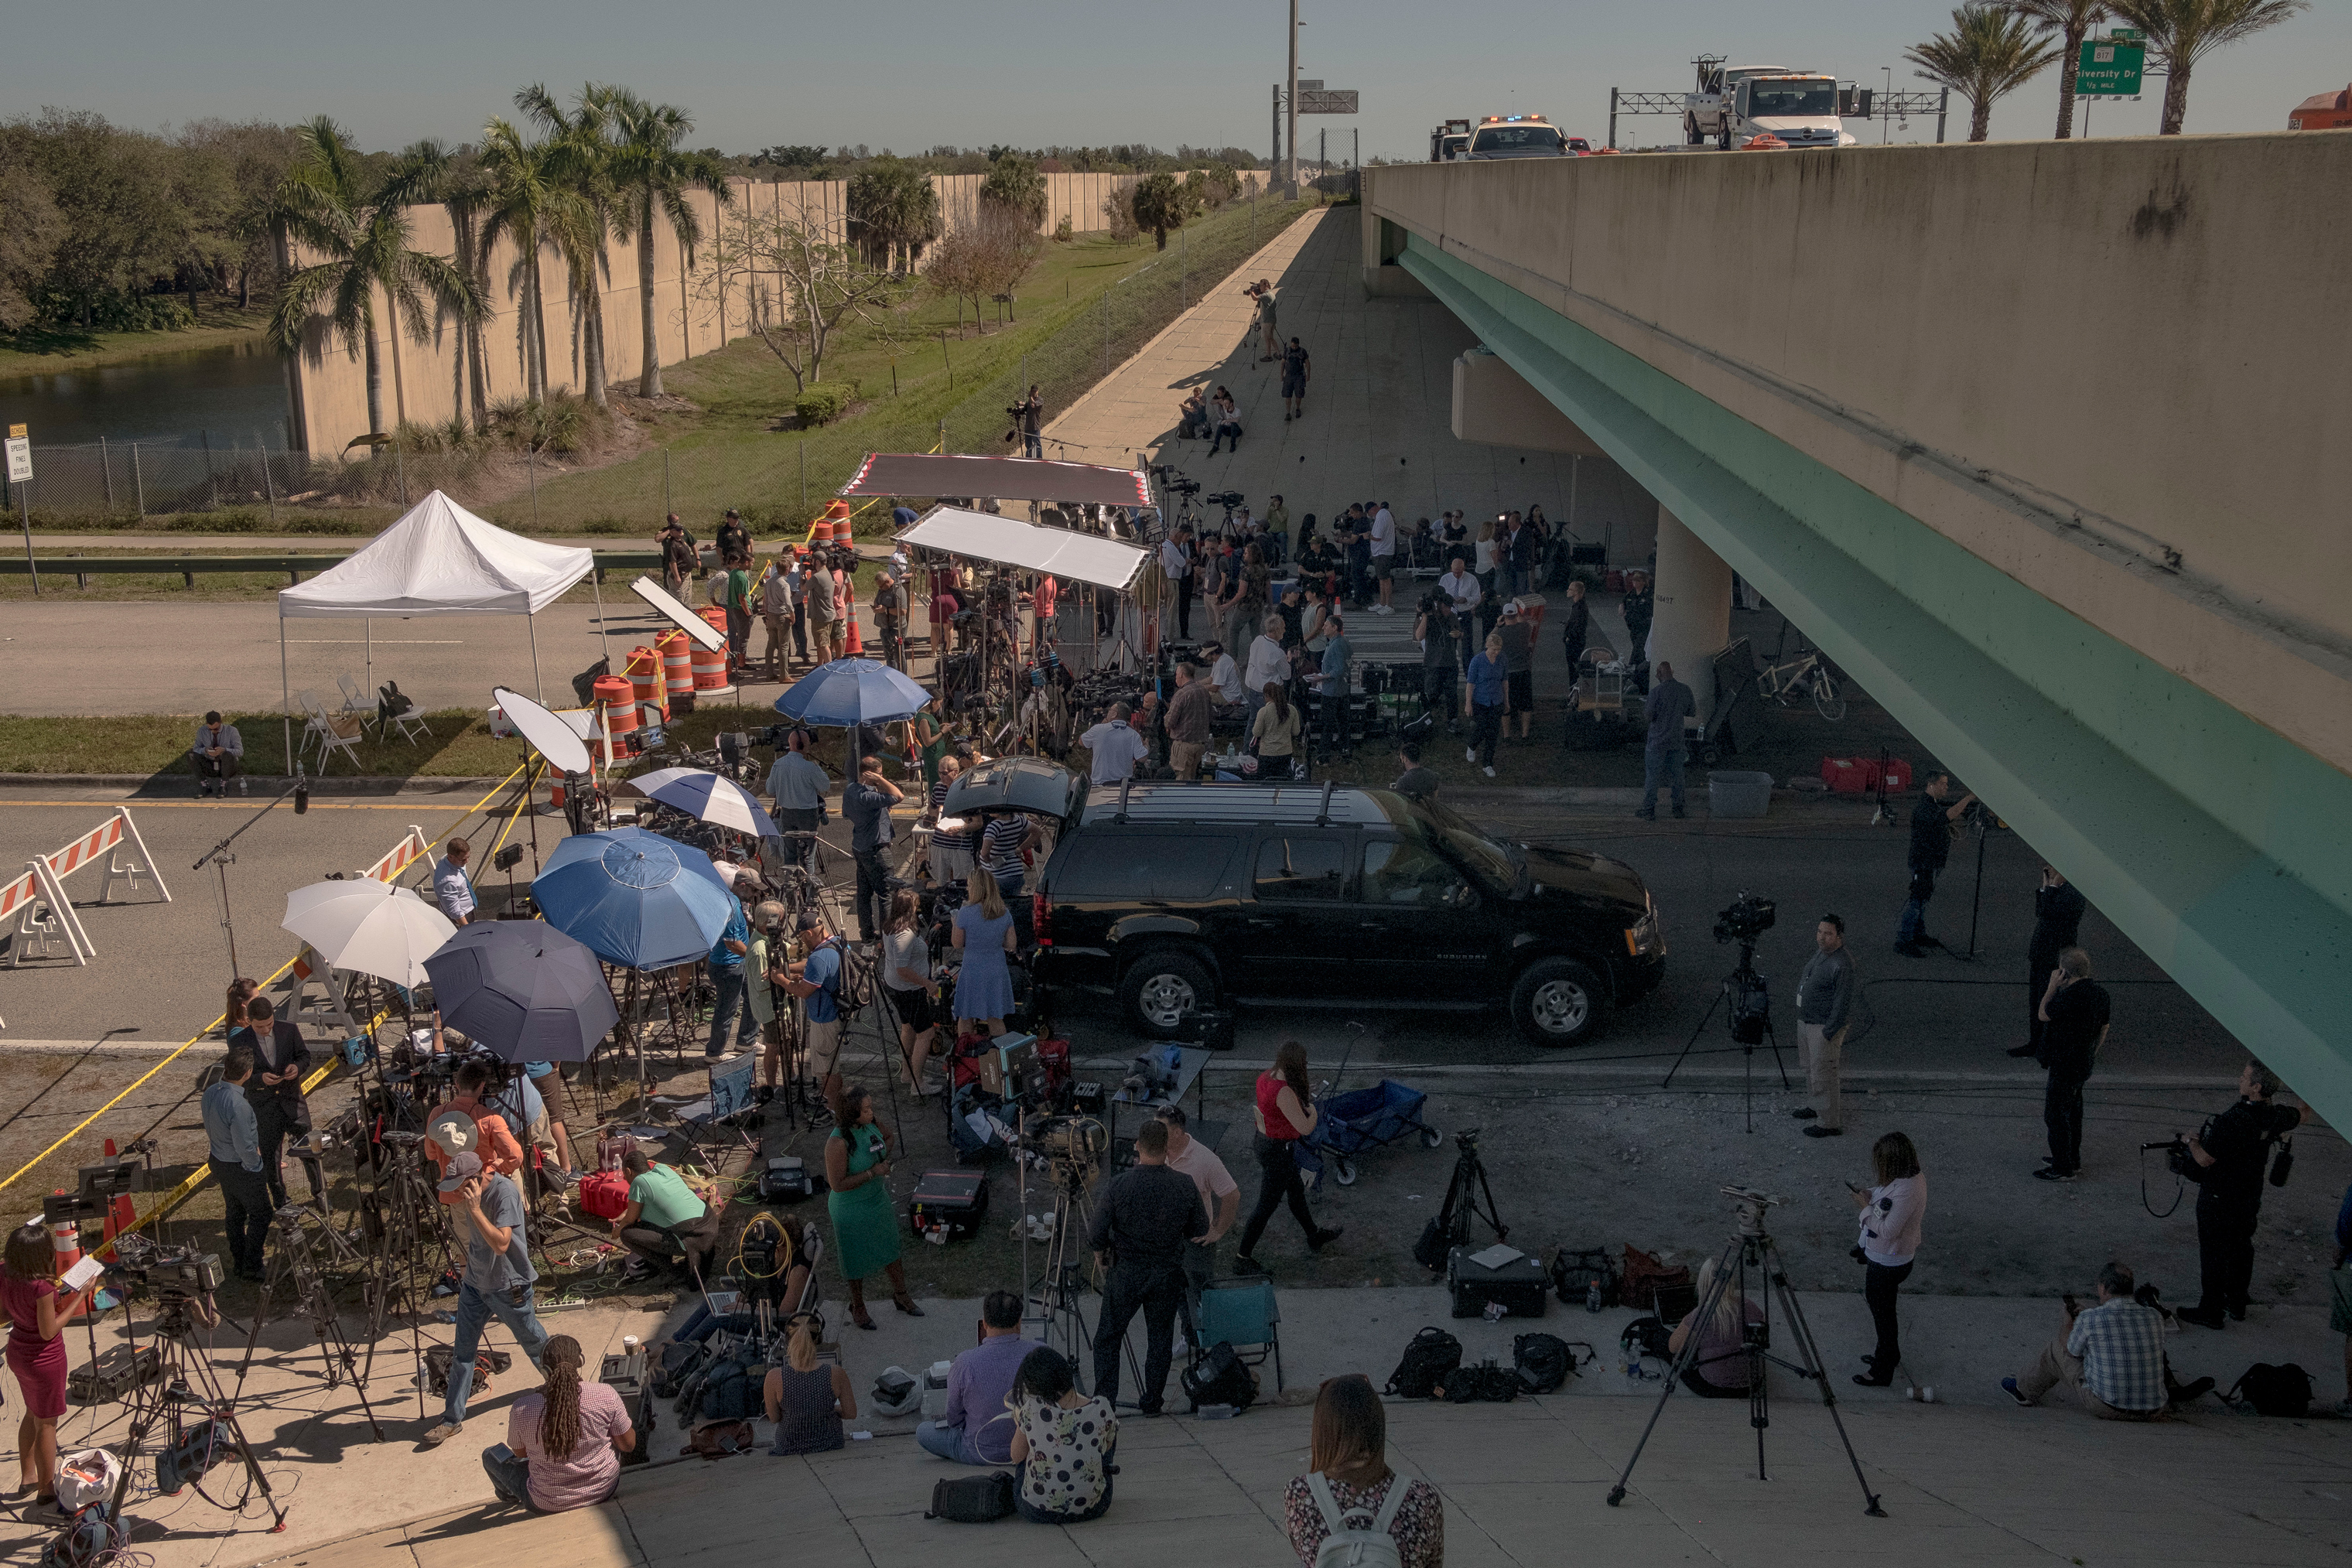 In the days after the shooting, television media congregated under the overpass outside of Marjory Stoneman Douglas, creating a staging area for stand ups and press conferences. It was the closest anyone could get to the school and to any news of what was happening.